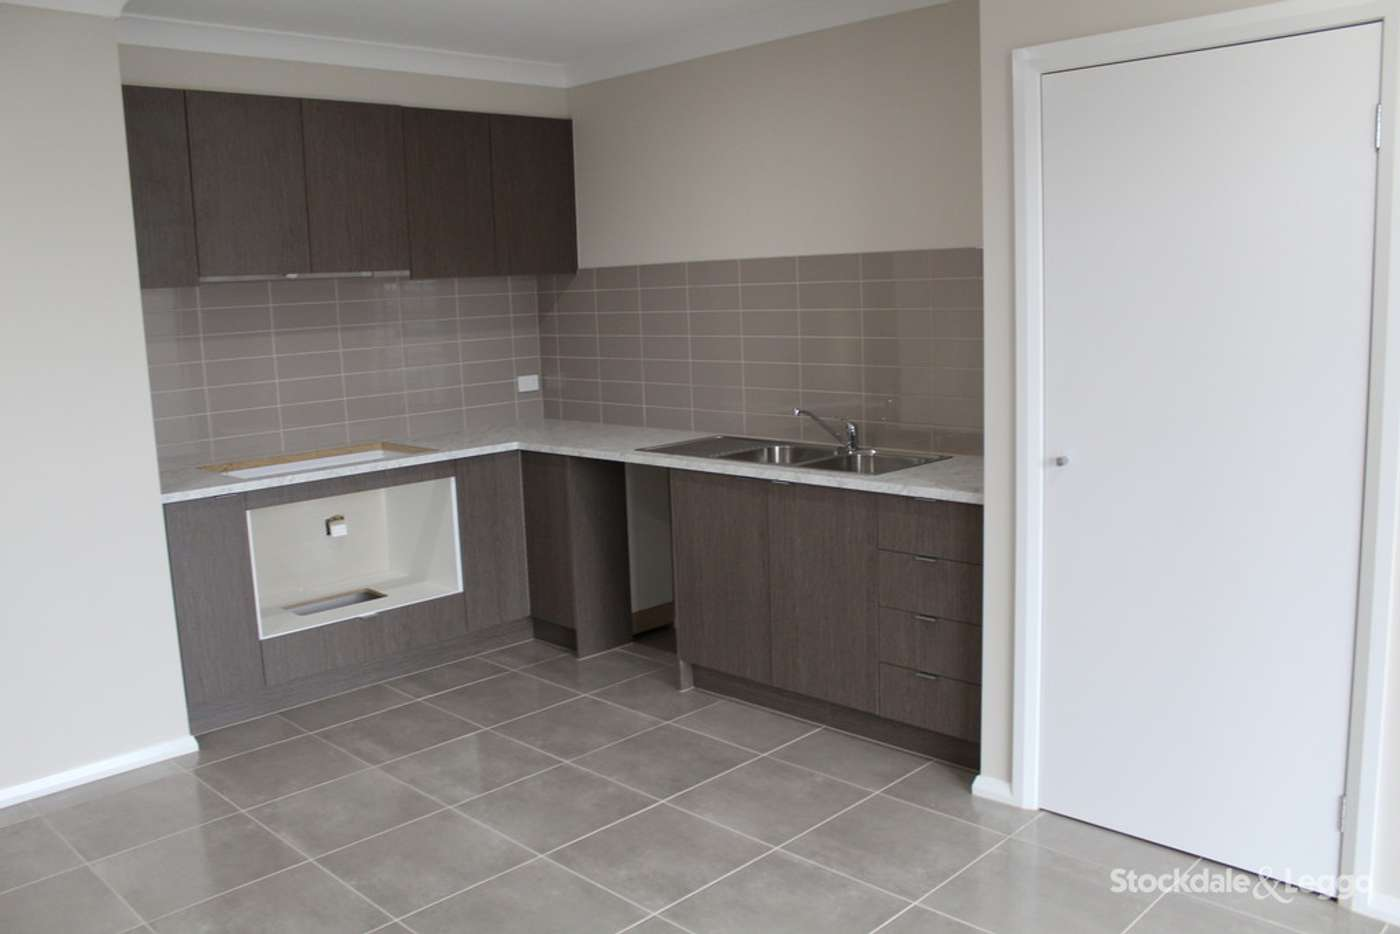 Sixth view of Homely townhouse listing, 45 Goldsborough Road, Truganina VIC 3029